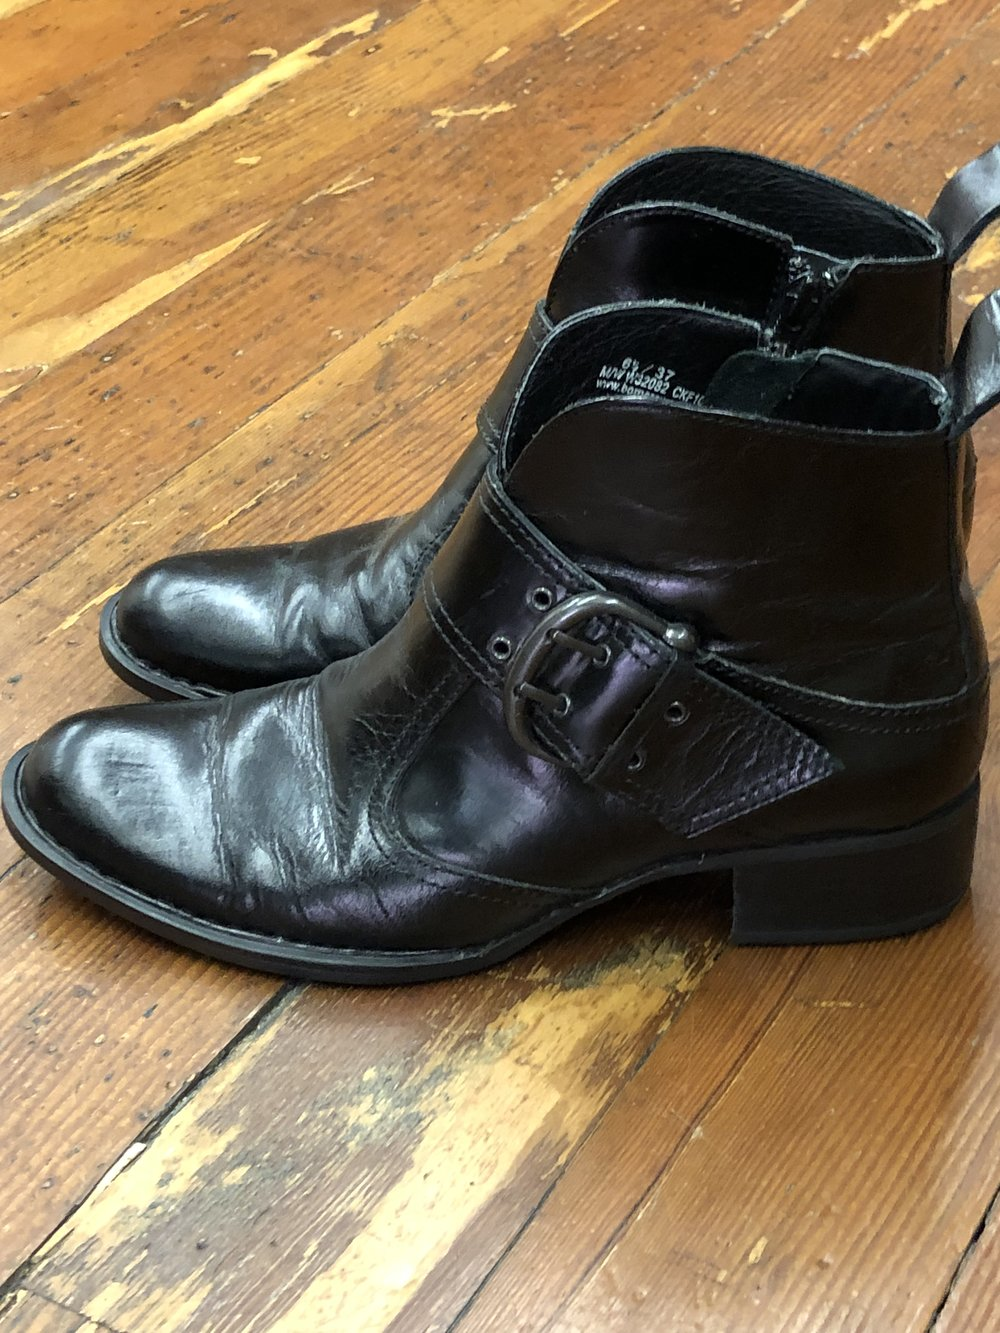 Born Short Buckle Boots - 6.5 -$44.99